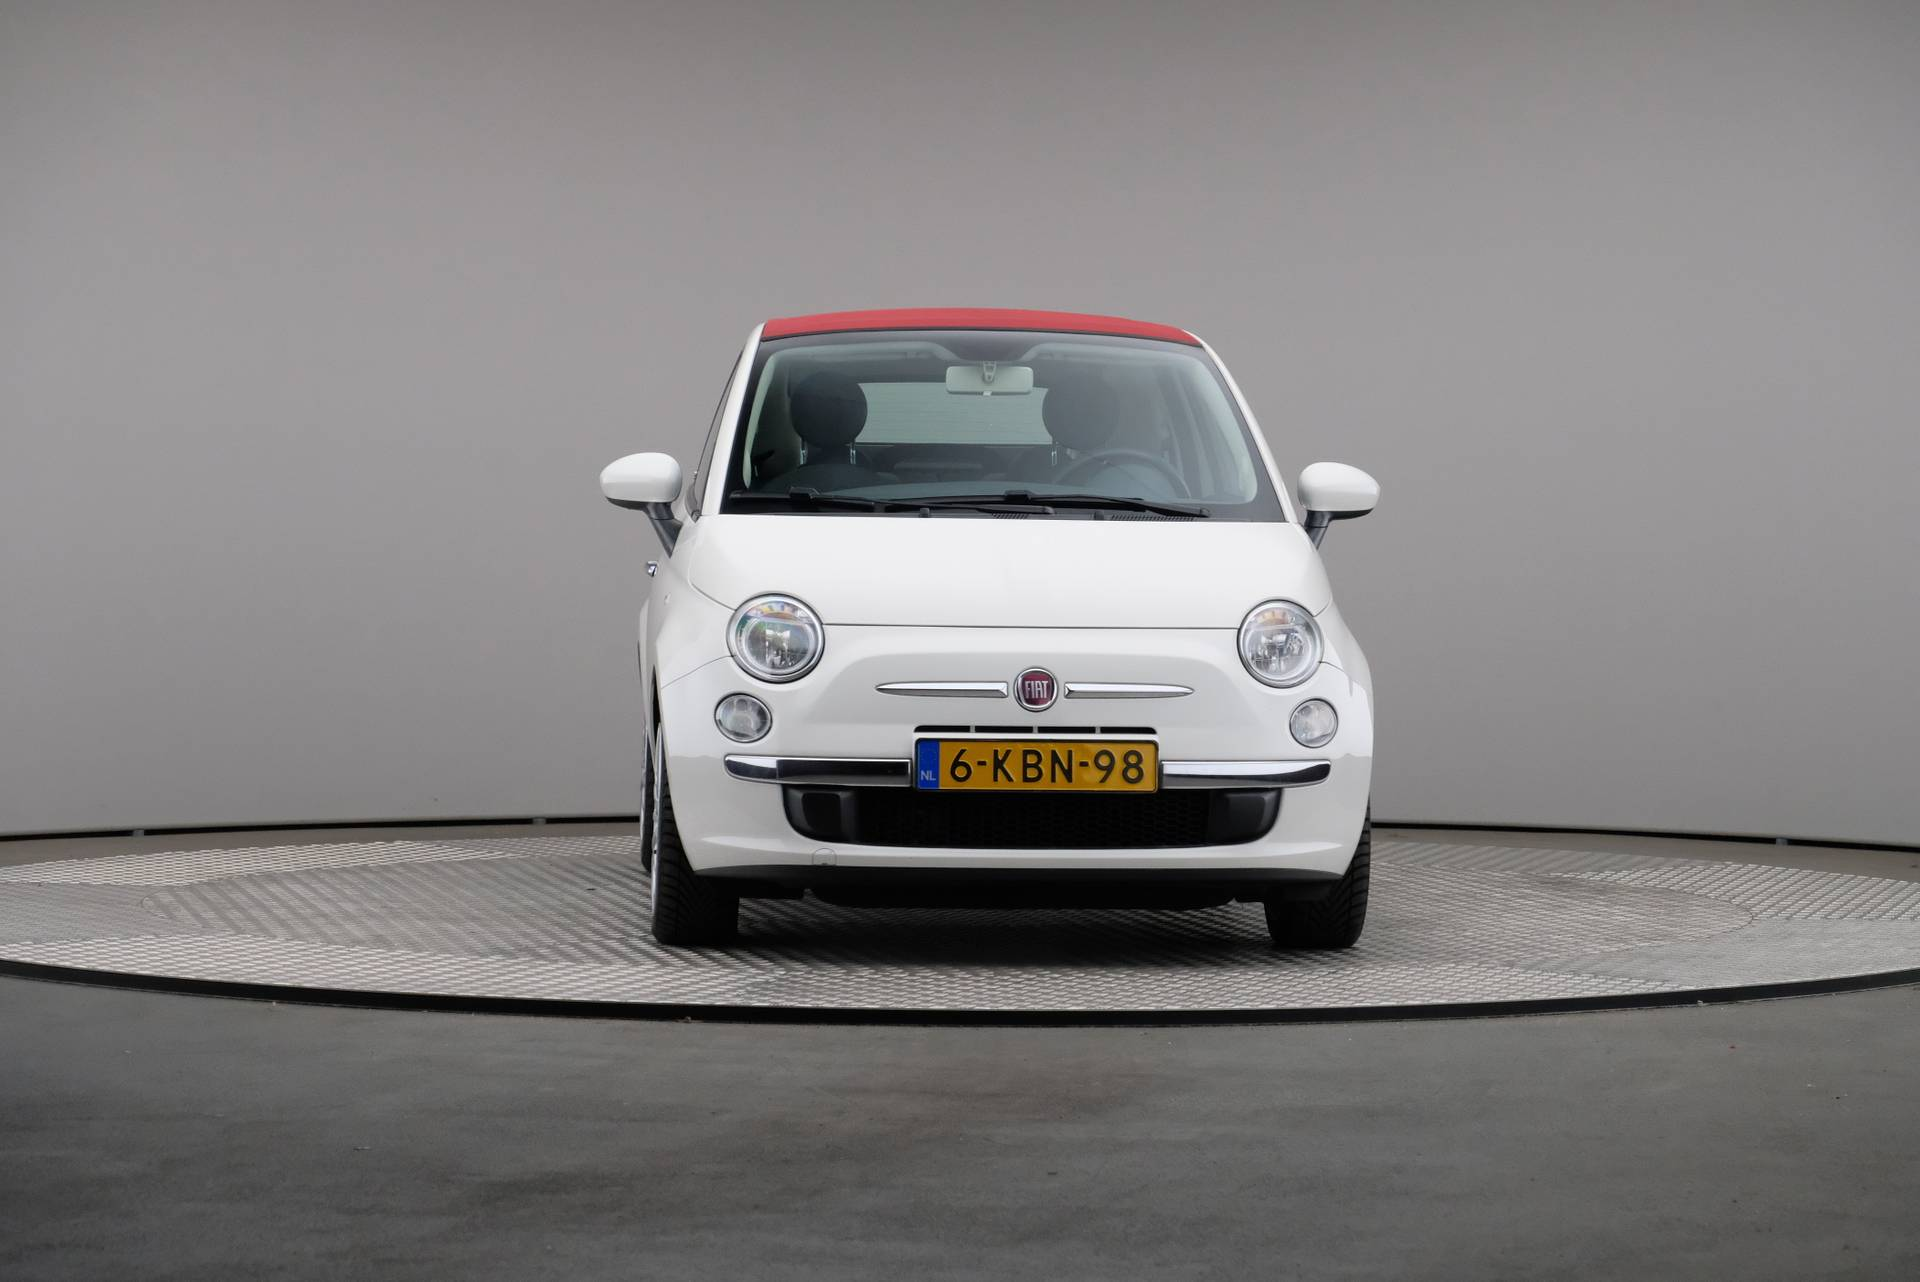 Fiat 500C TwinAir Turbo 85 Lounge, Airconditioning, 360-image32